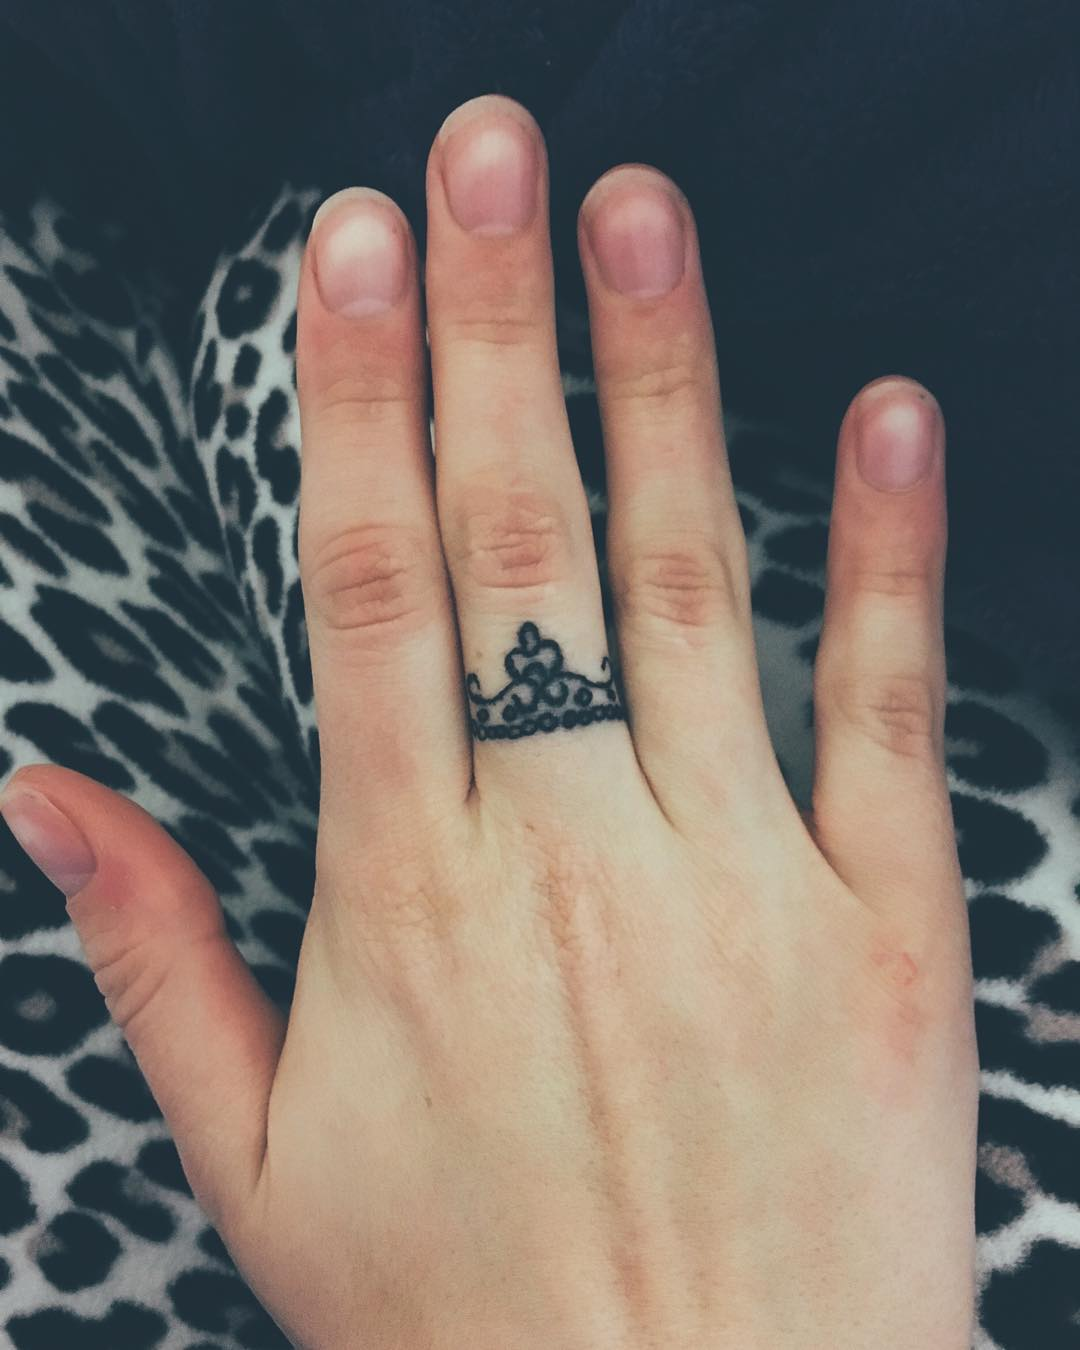 Princess Crown Finger Ring Tattoo